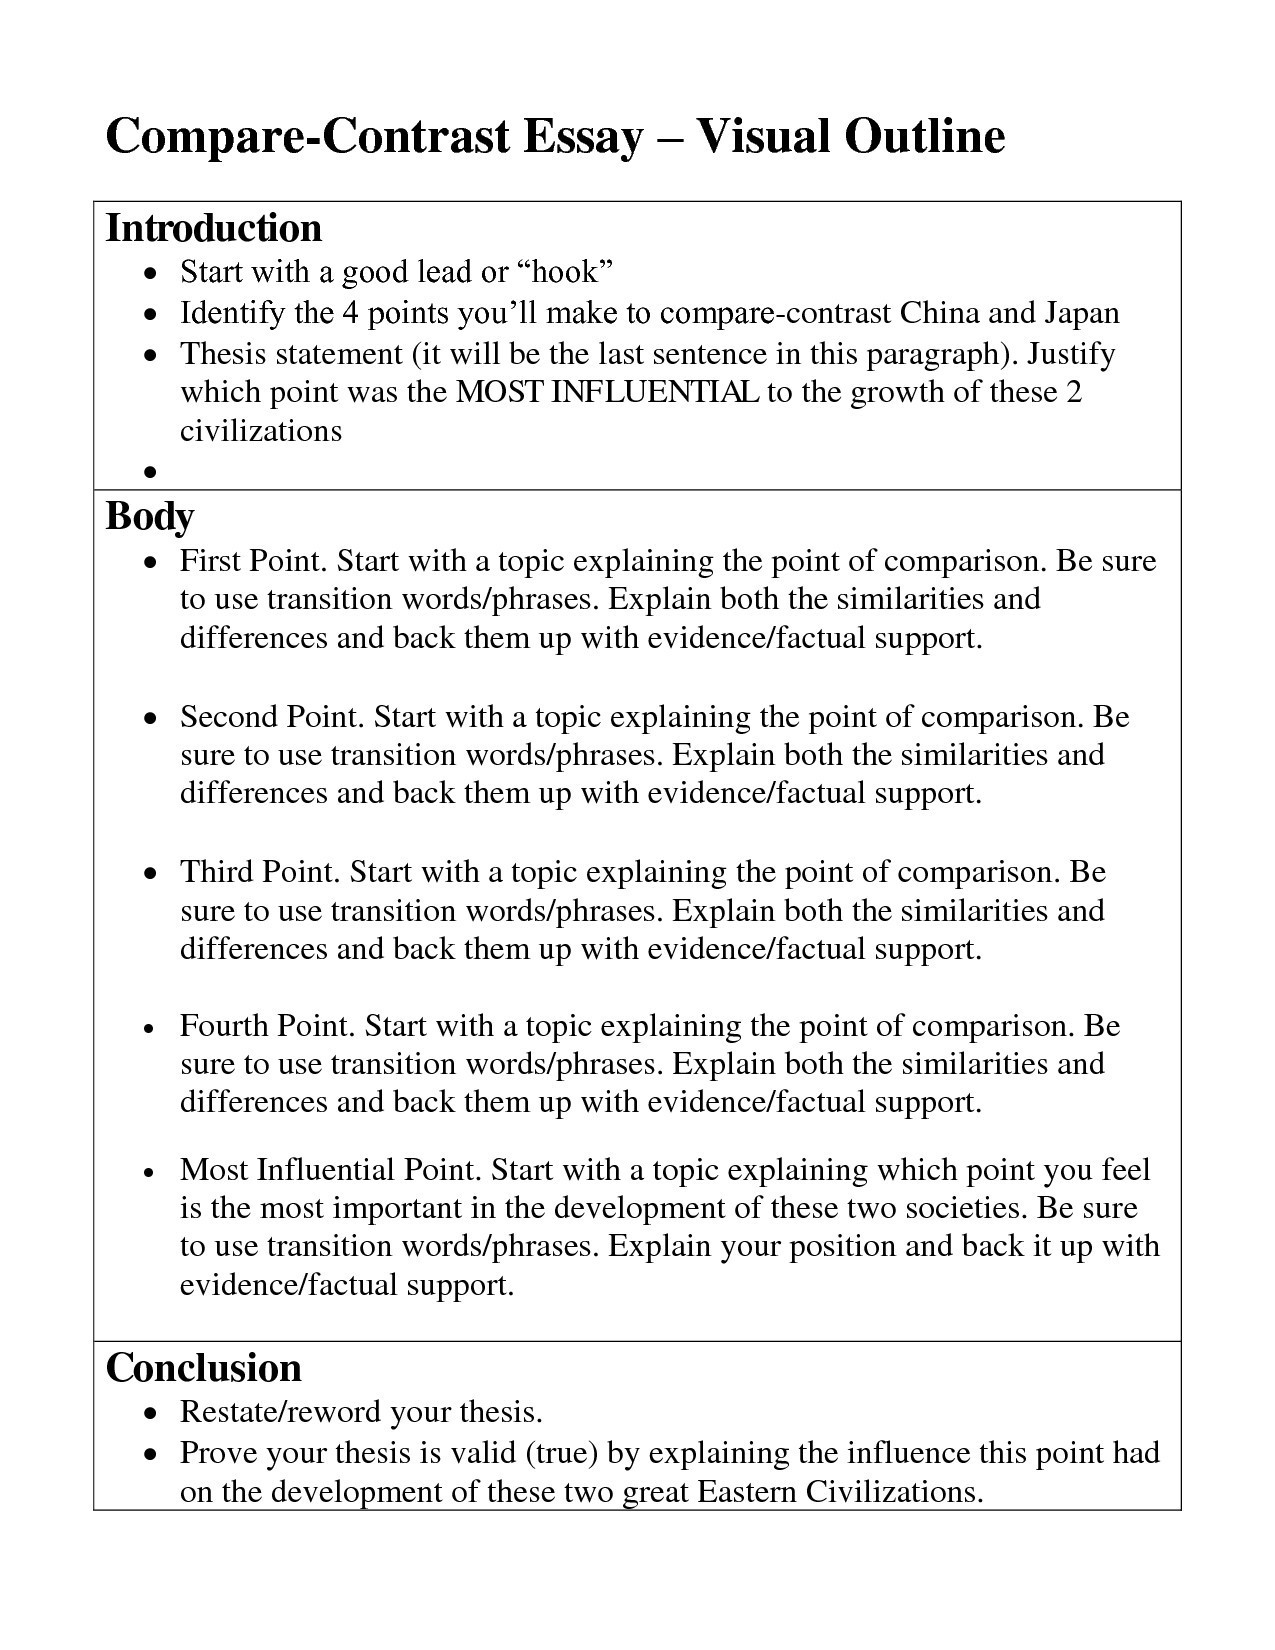 014 Good Hook For An Essay Writing Hooks Worksheet Refrence